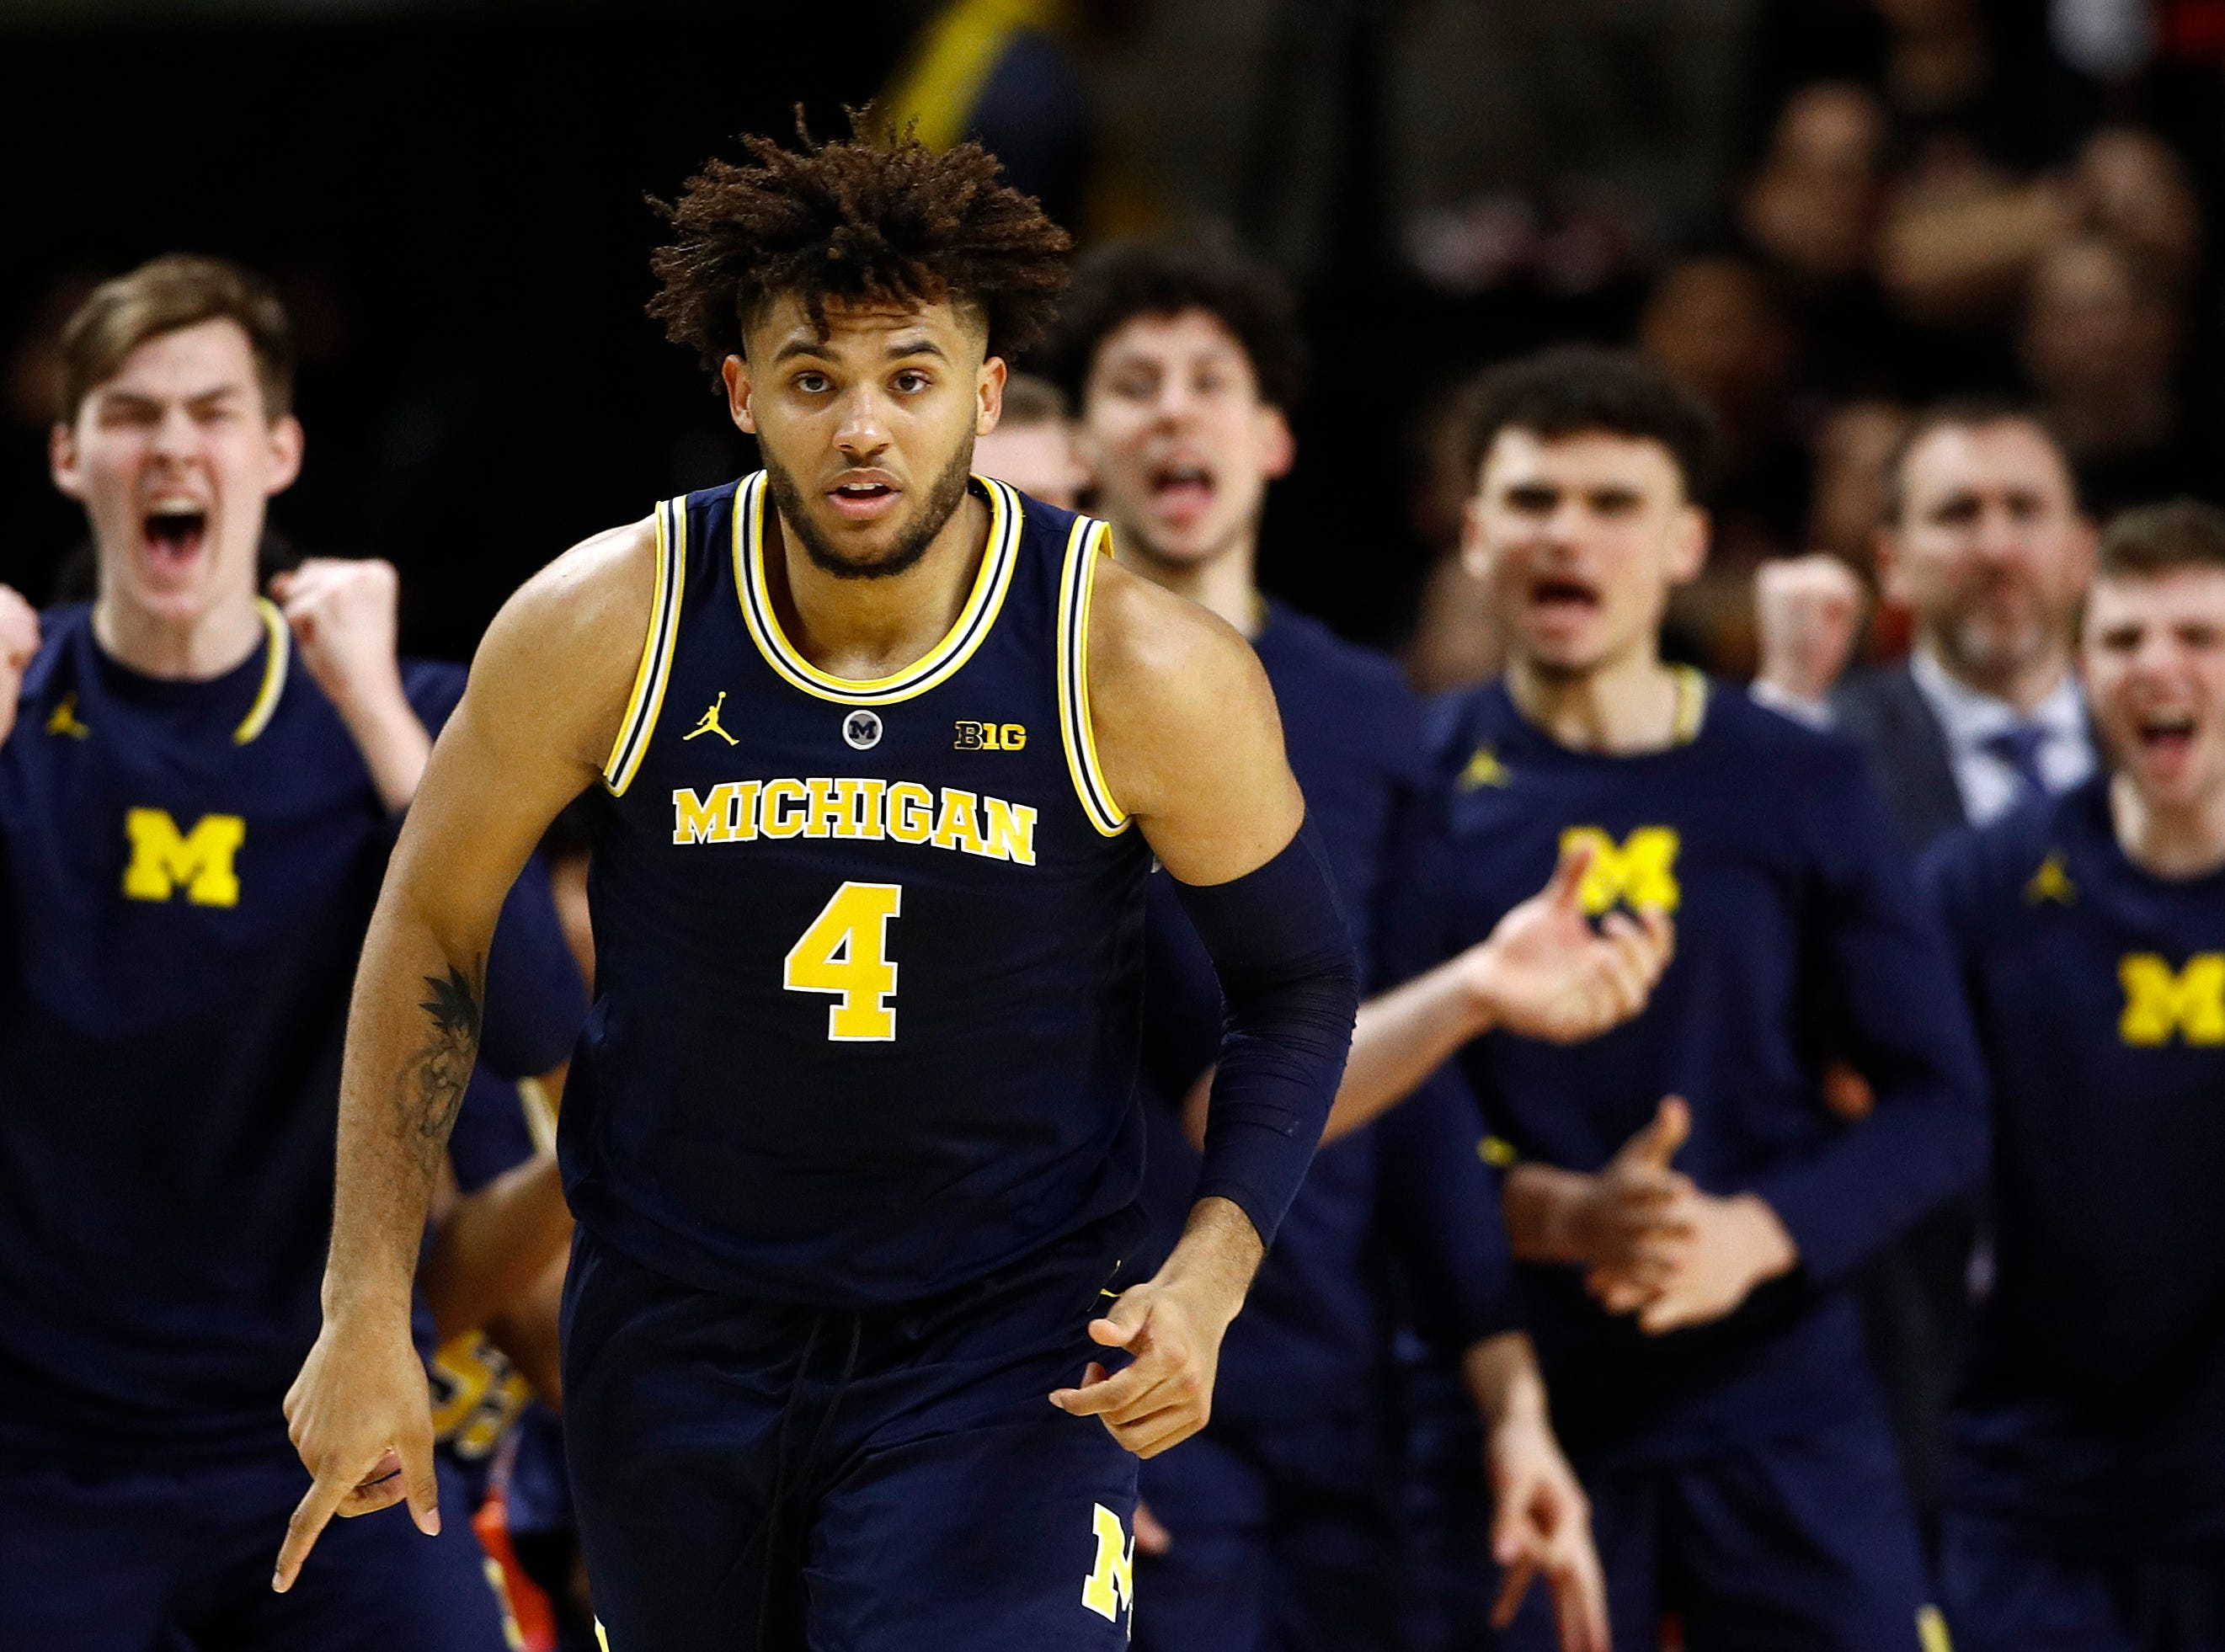 3. Michigan (26-4, 15-4) – The Wolverines had a heck of a bounce-back week after the loss to Michigan State, cruising past a disinterested Nebraska team before getting a gutty road win over Maryland on Sunday without Charles Matthews. He'll have a week to heal before the season finale with Michigan State, but his status seems to be up in the air. Either way, the Wolverines – like the Spartans – are hoping for Purdue to falter and make the showdown for more than second place. Last week: 2.